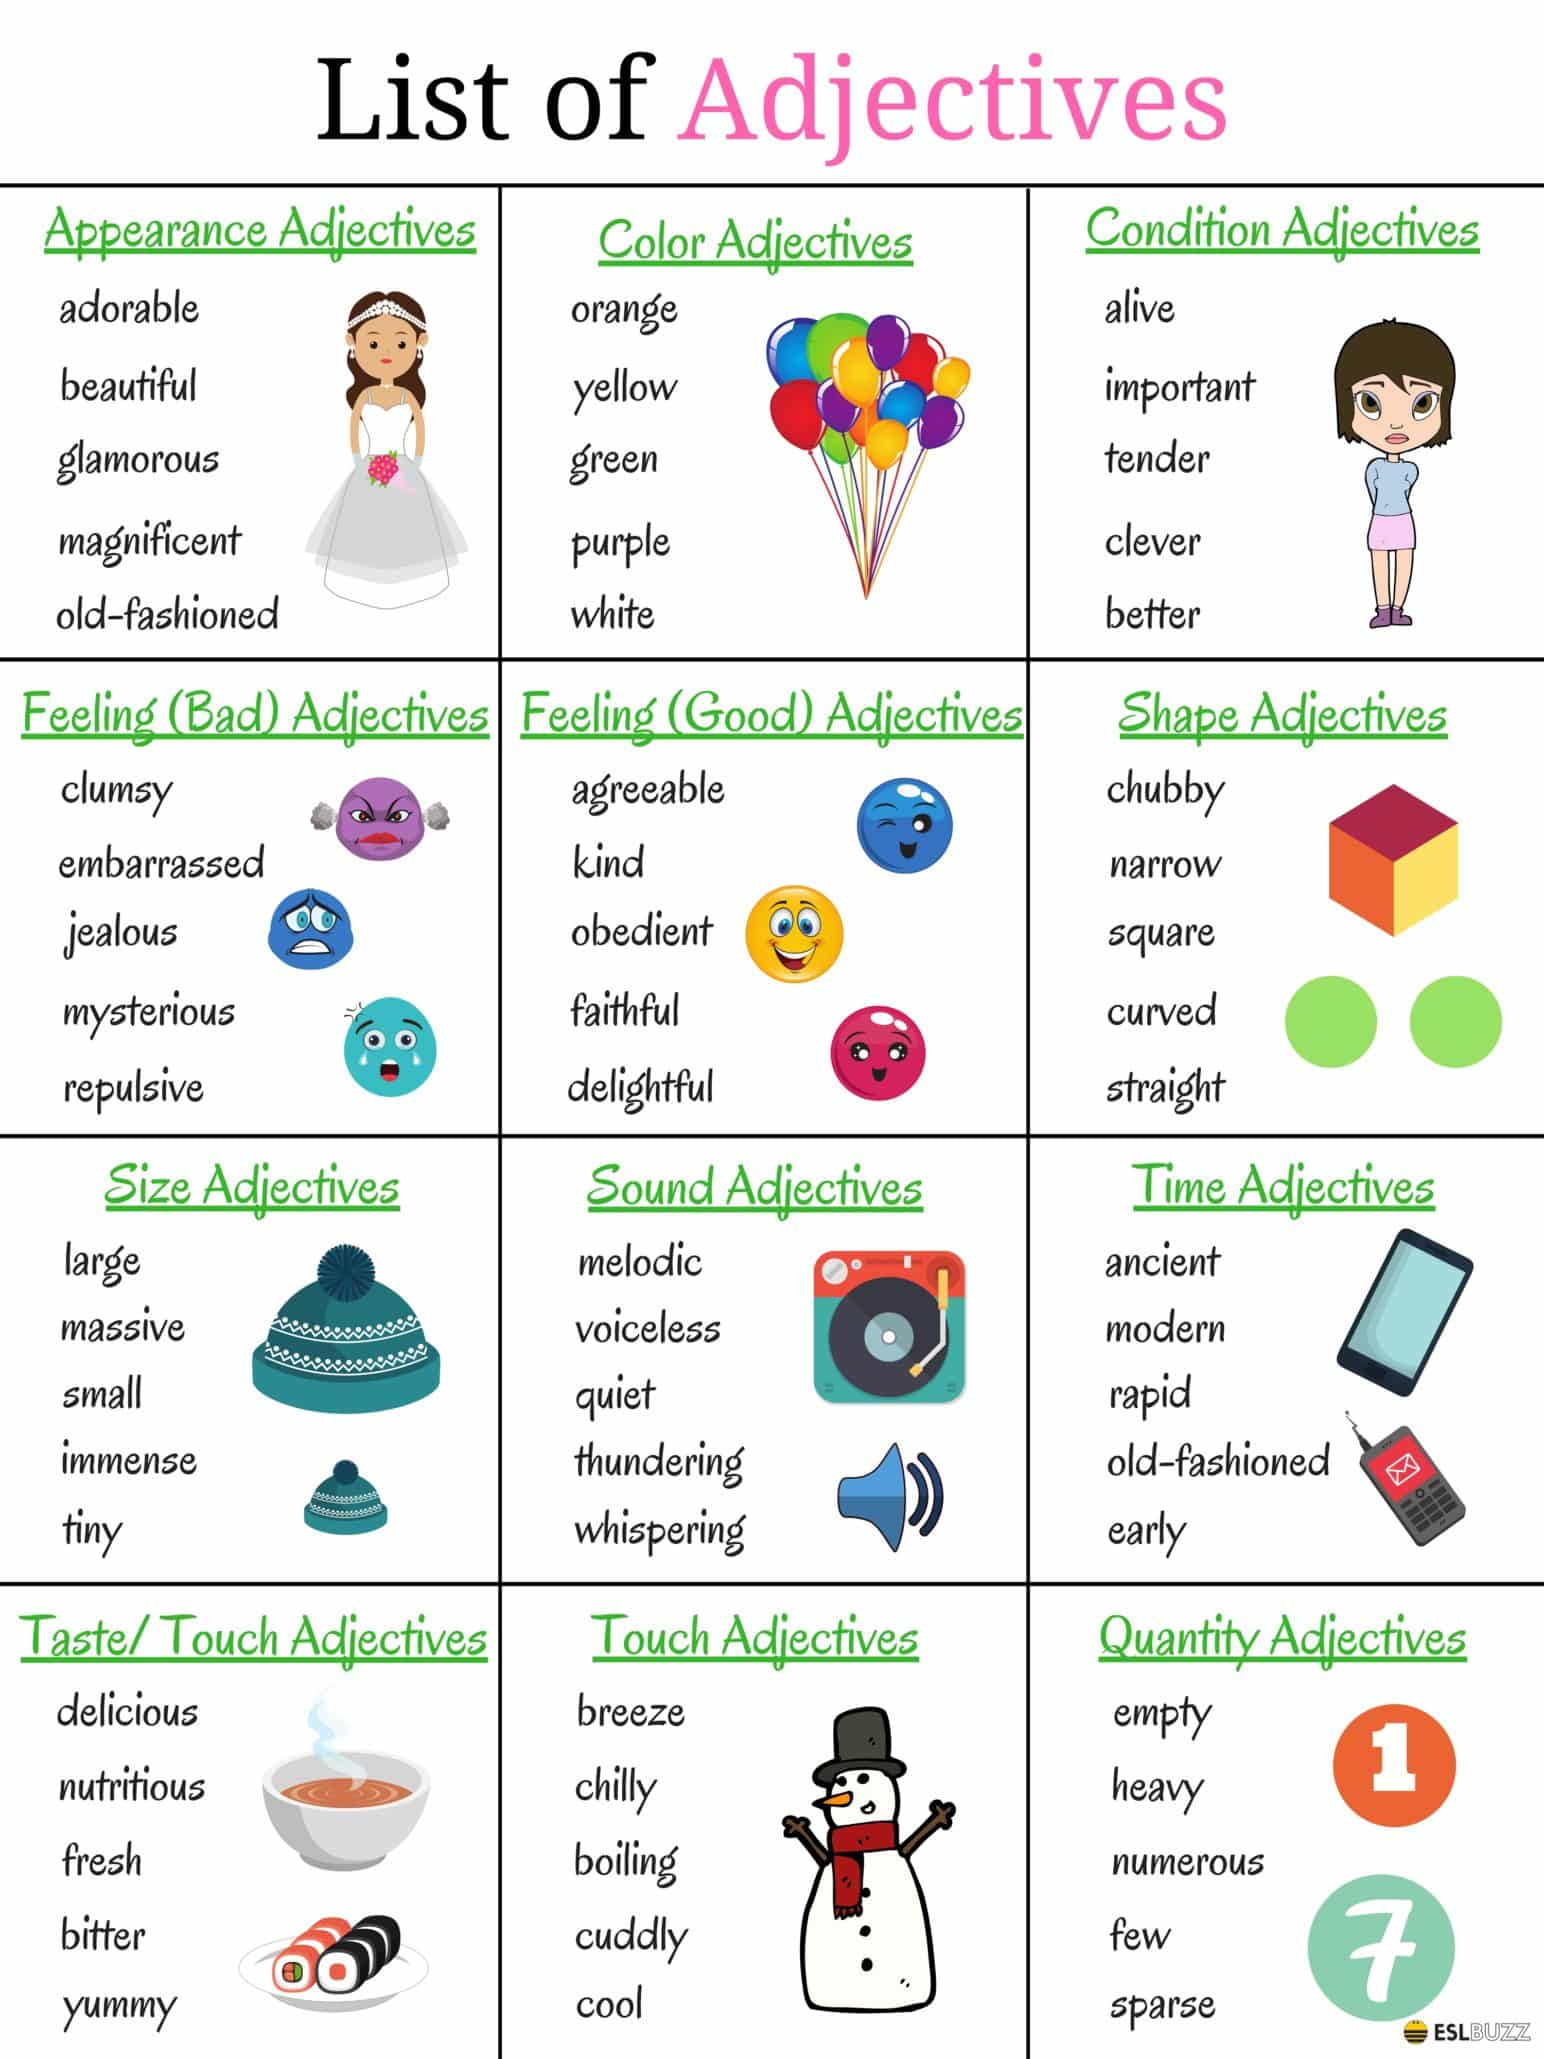 List of Adjectives: Learn Popular Adjectives in English 9